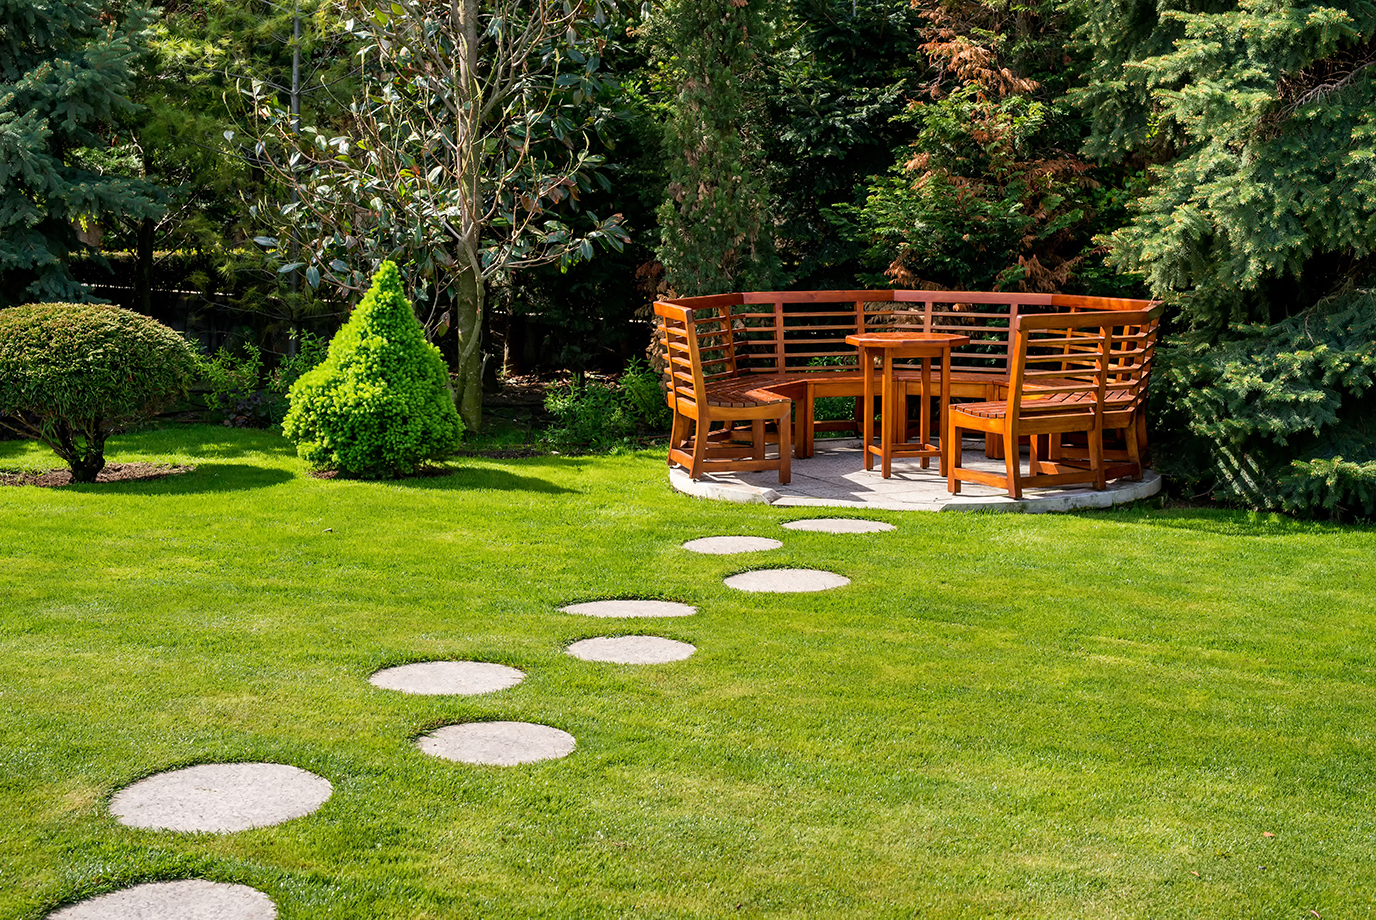 How to Make the Most of Your First Backyard | TruGreen Image